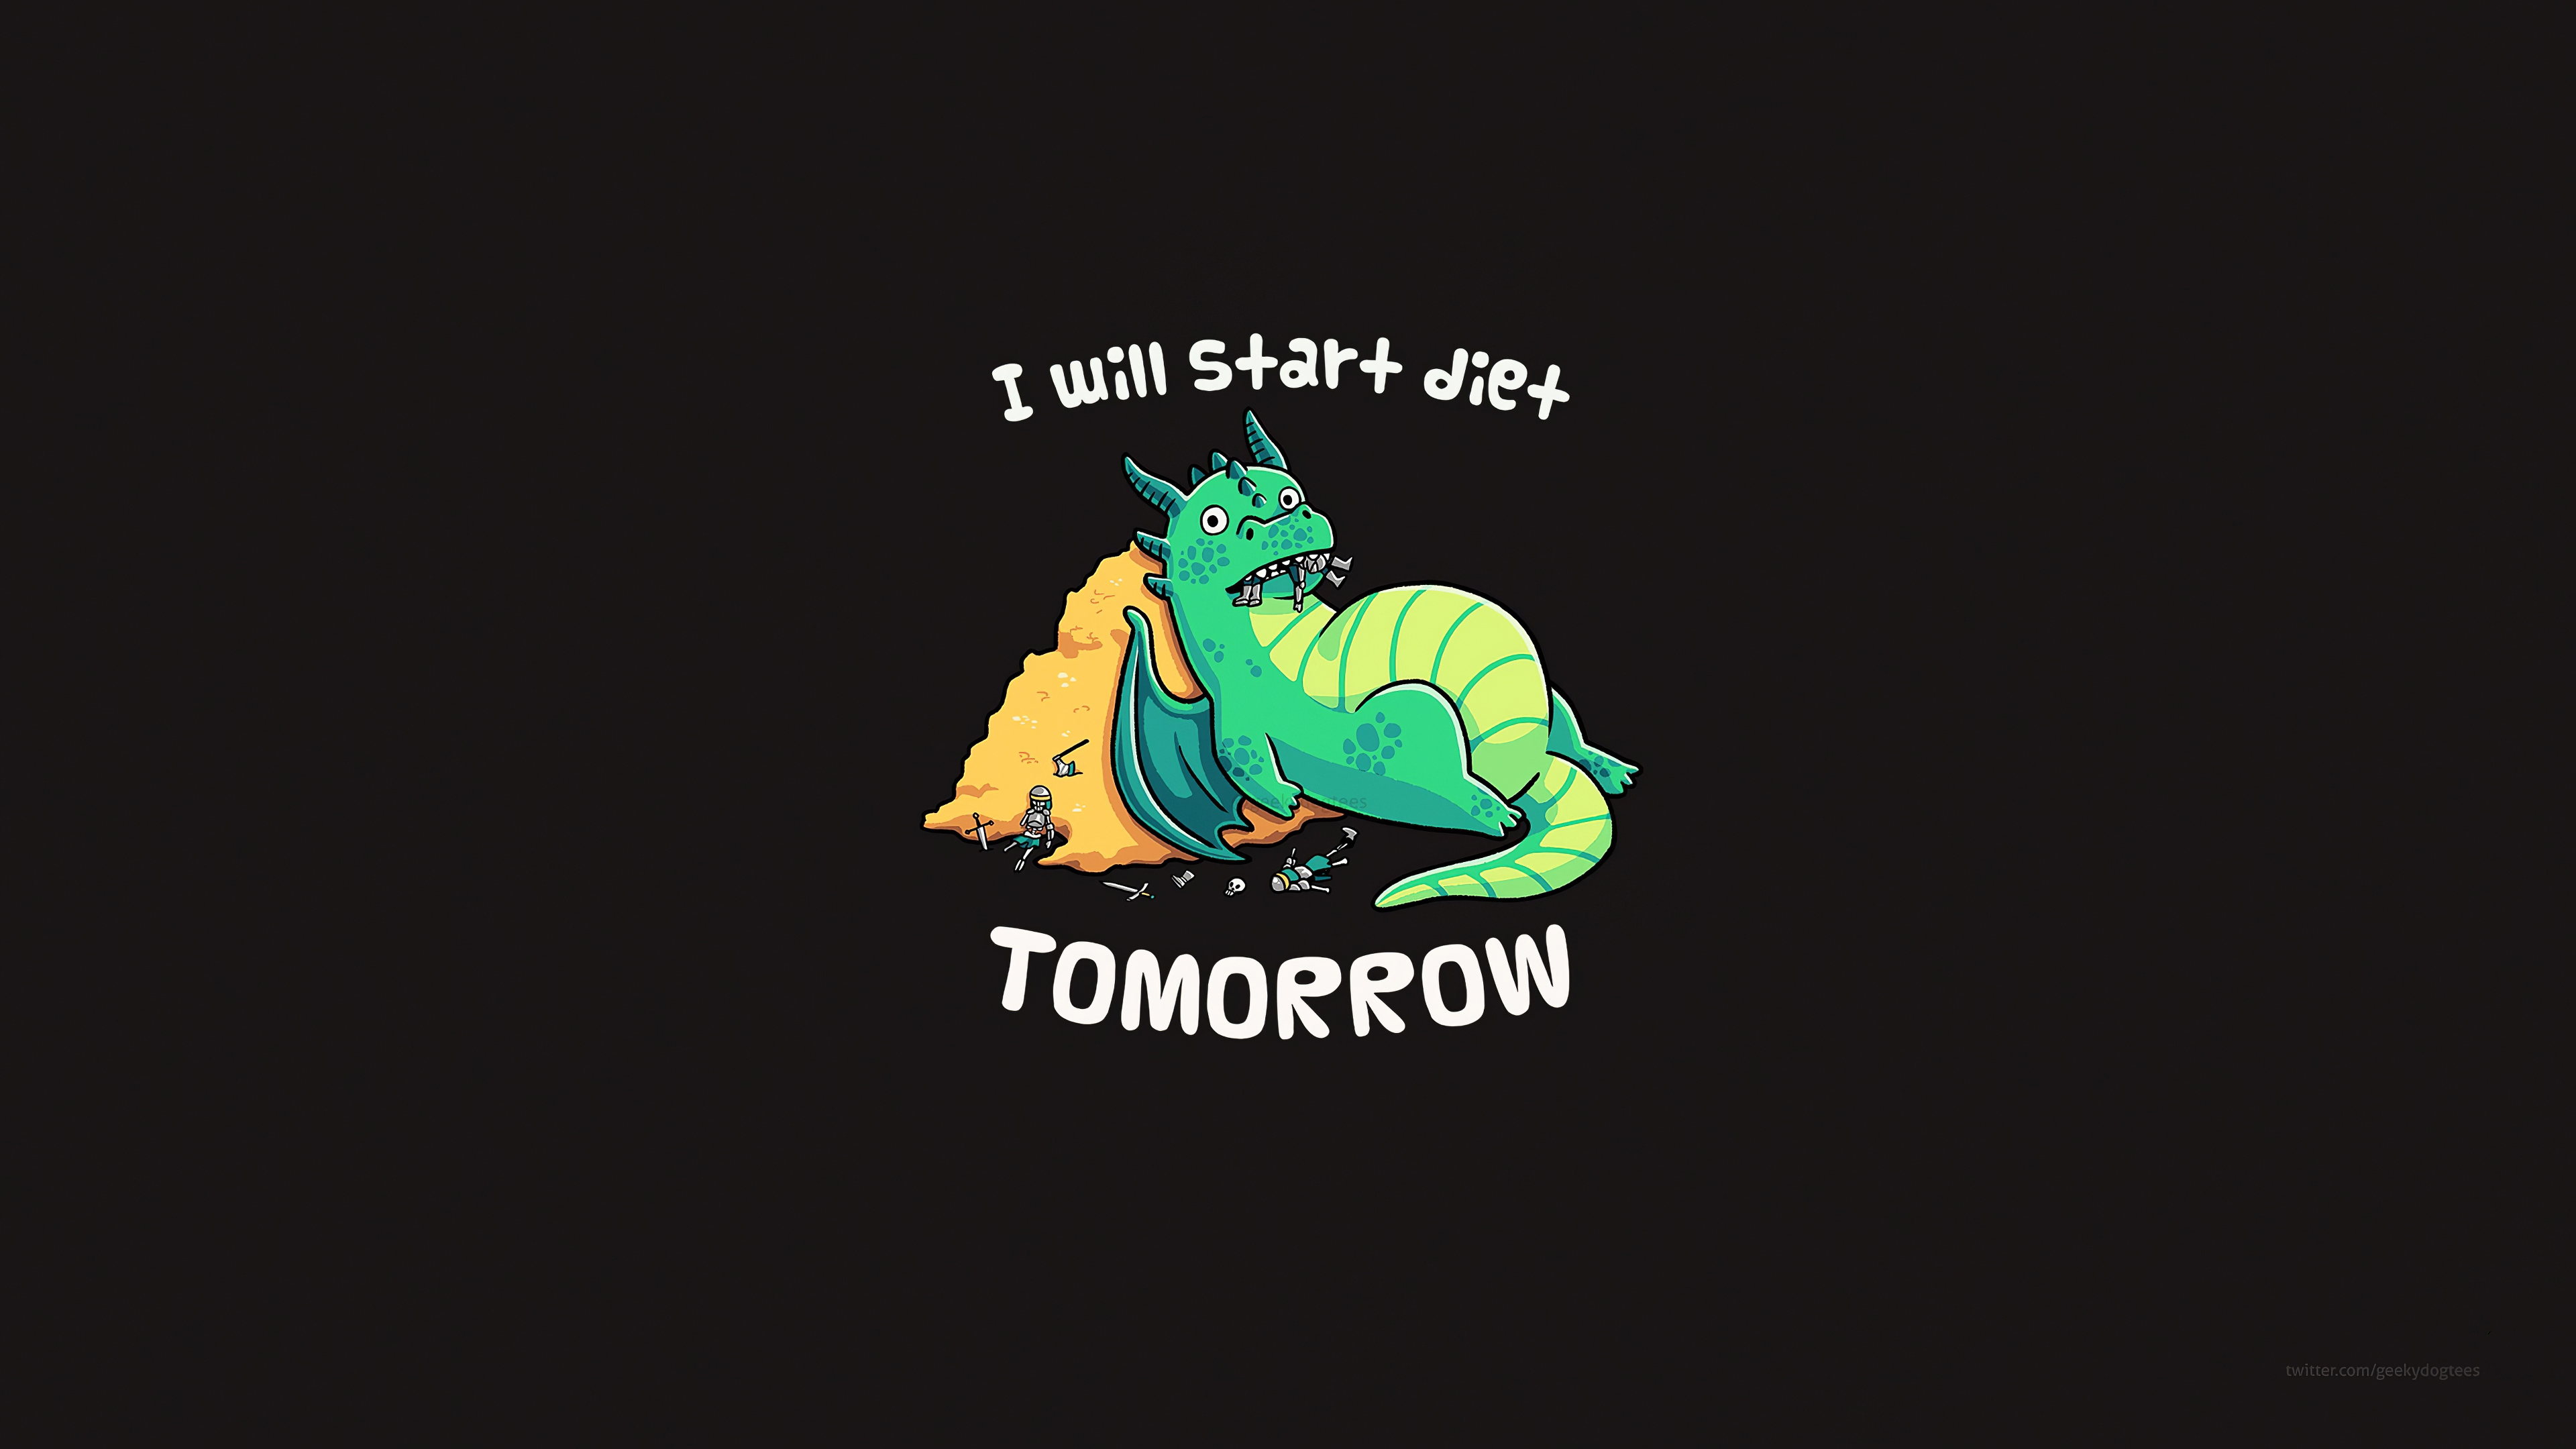 1336x768 I Will Start Diet Tomorrow Funny Dragon 4k Laptop Hd Hd 4k Wallpapers Images Backgrounds Photos And Pictures